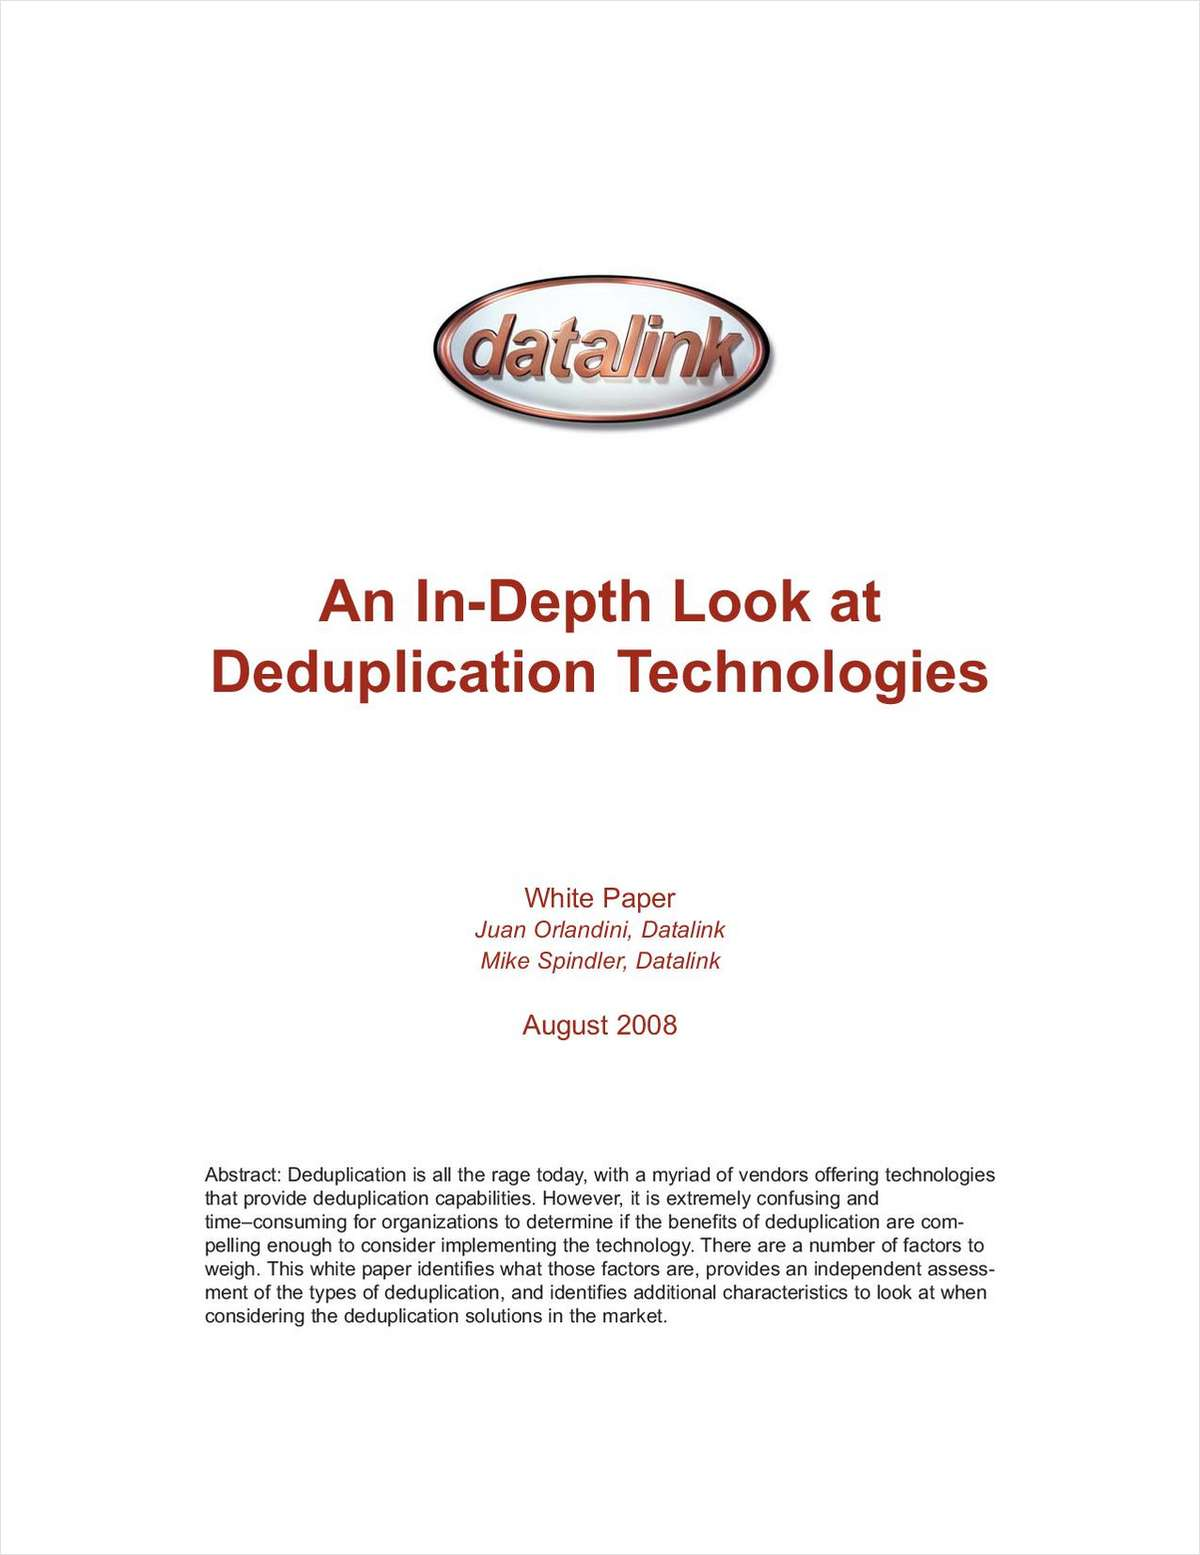 An In-Depth Look at Deduplication Technologies